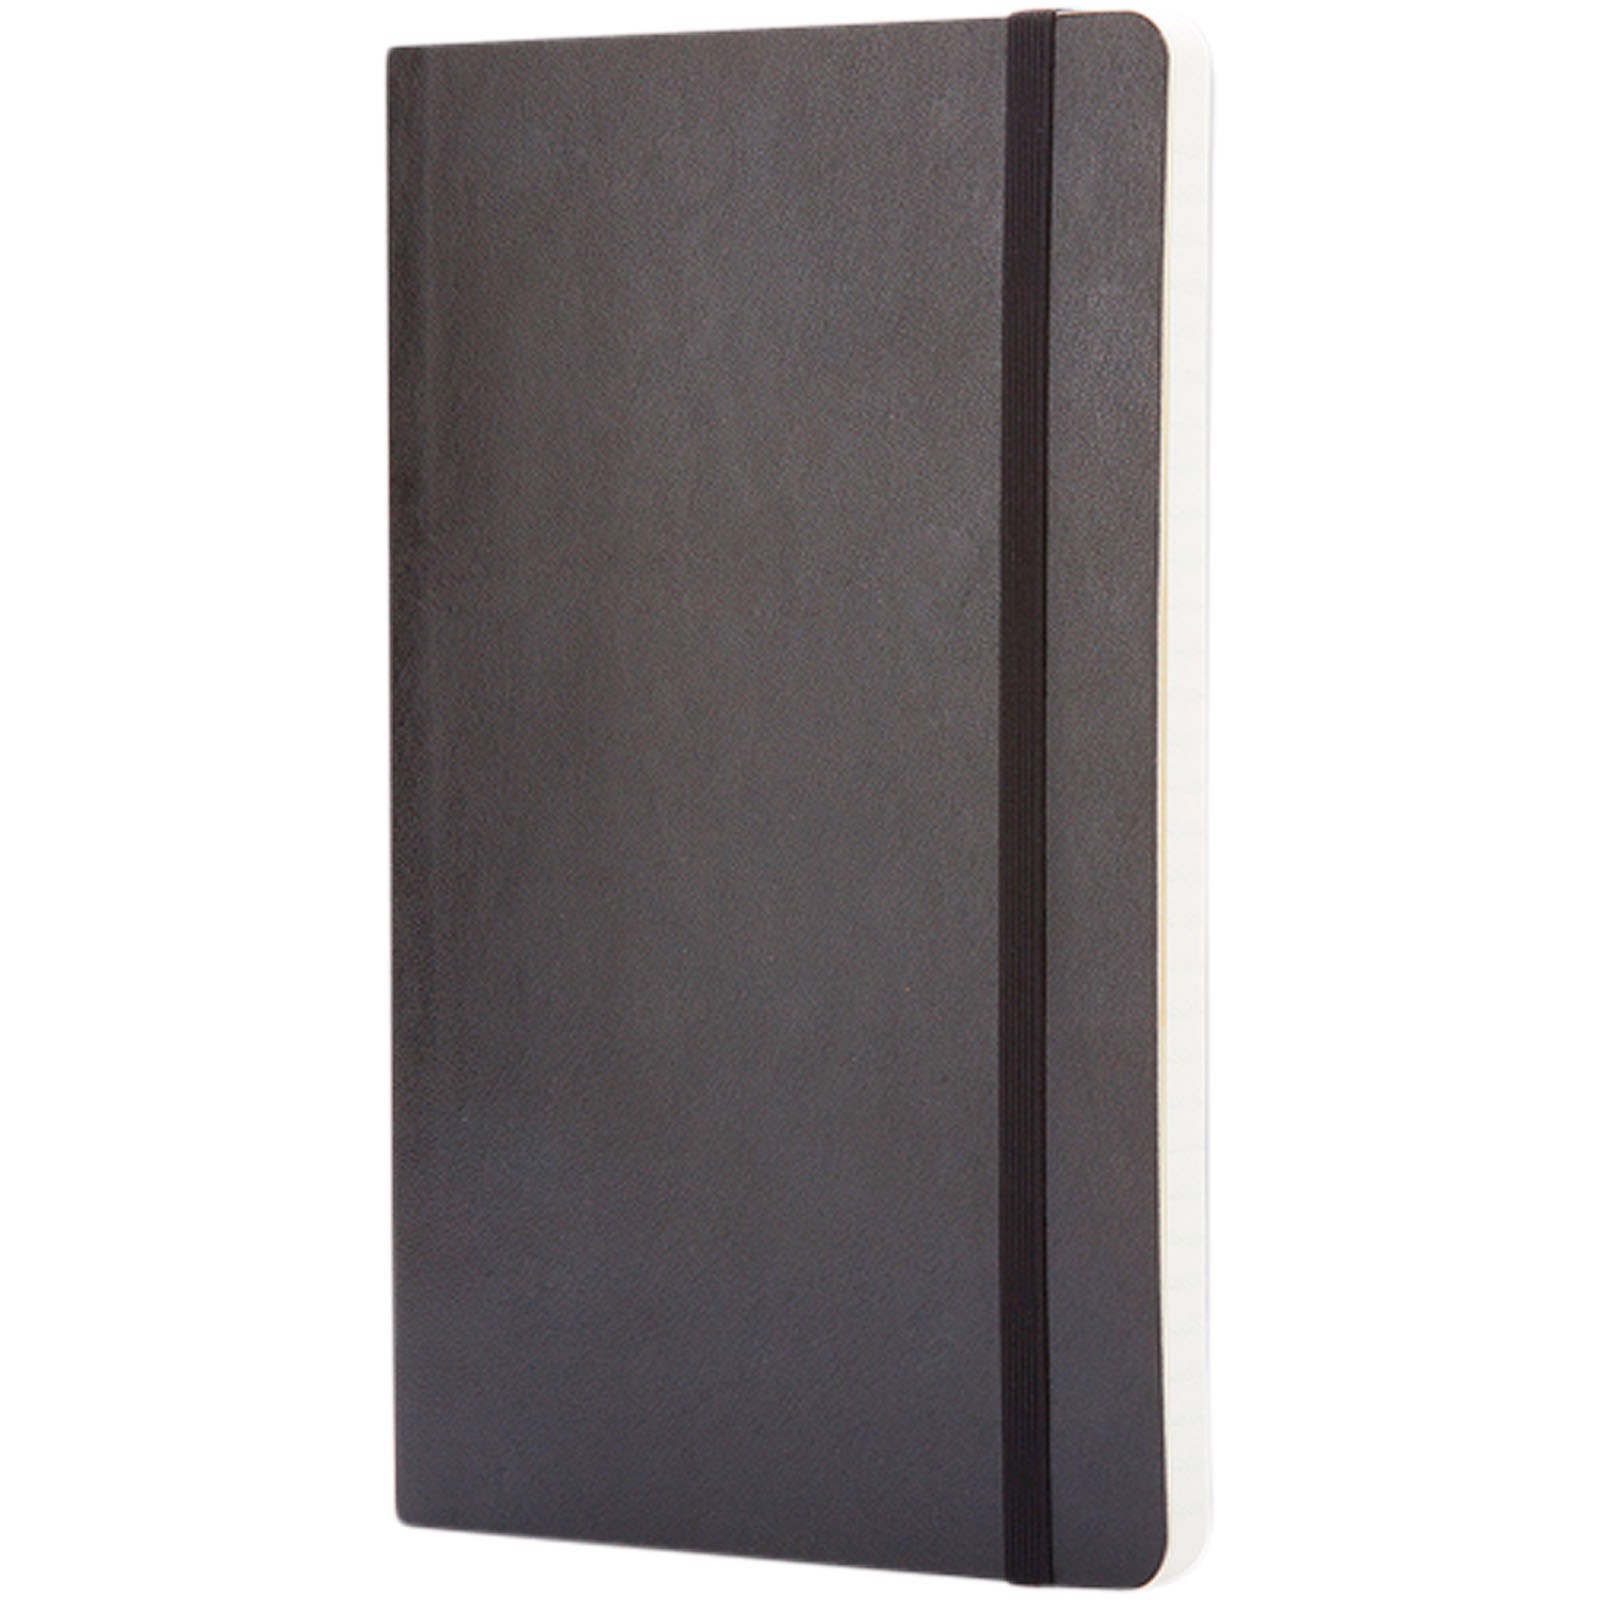 Classic L soft cover notebook - ruled - Solid black